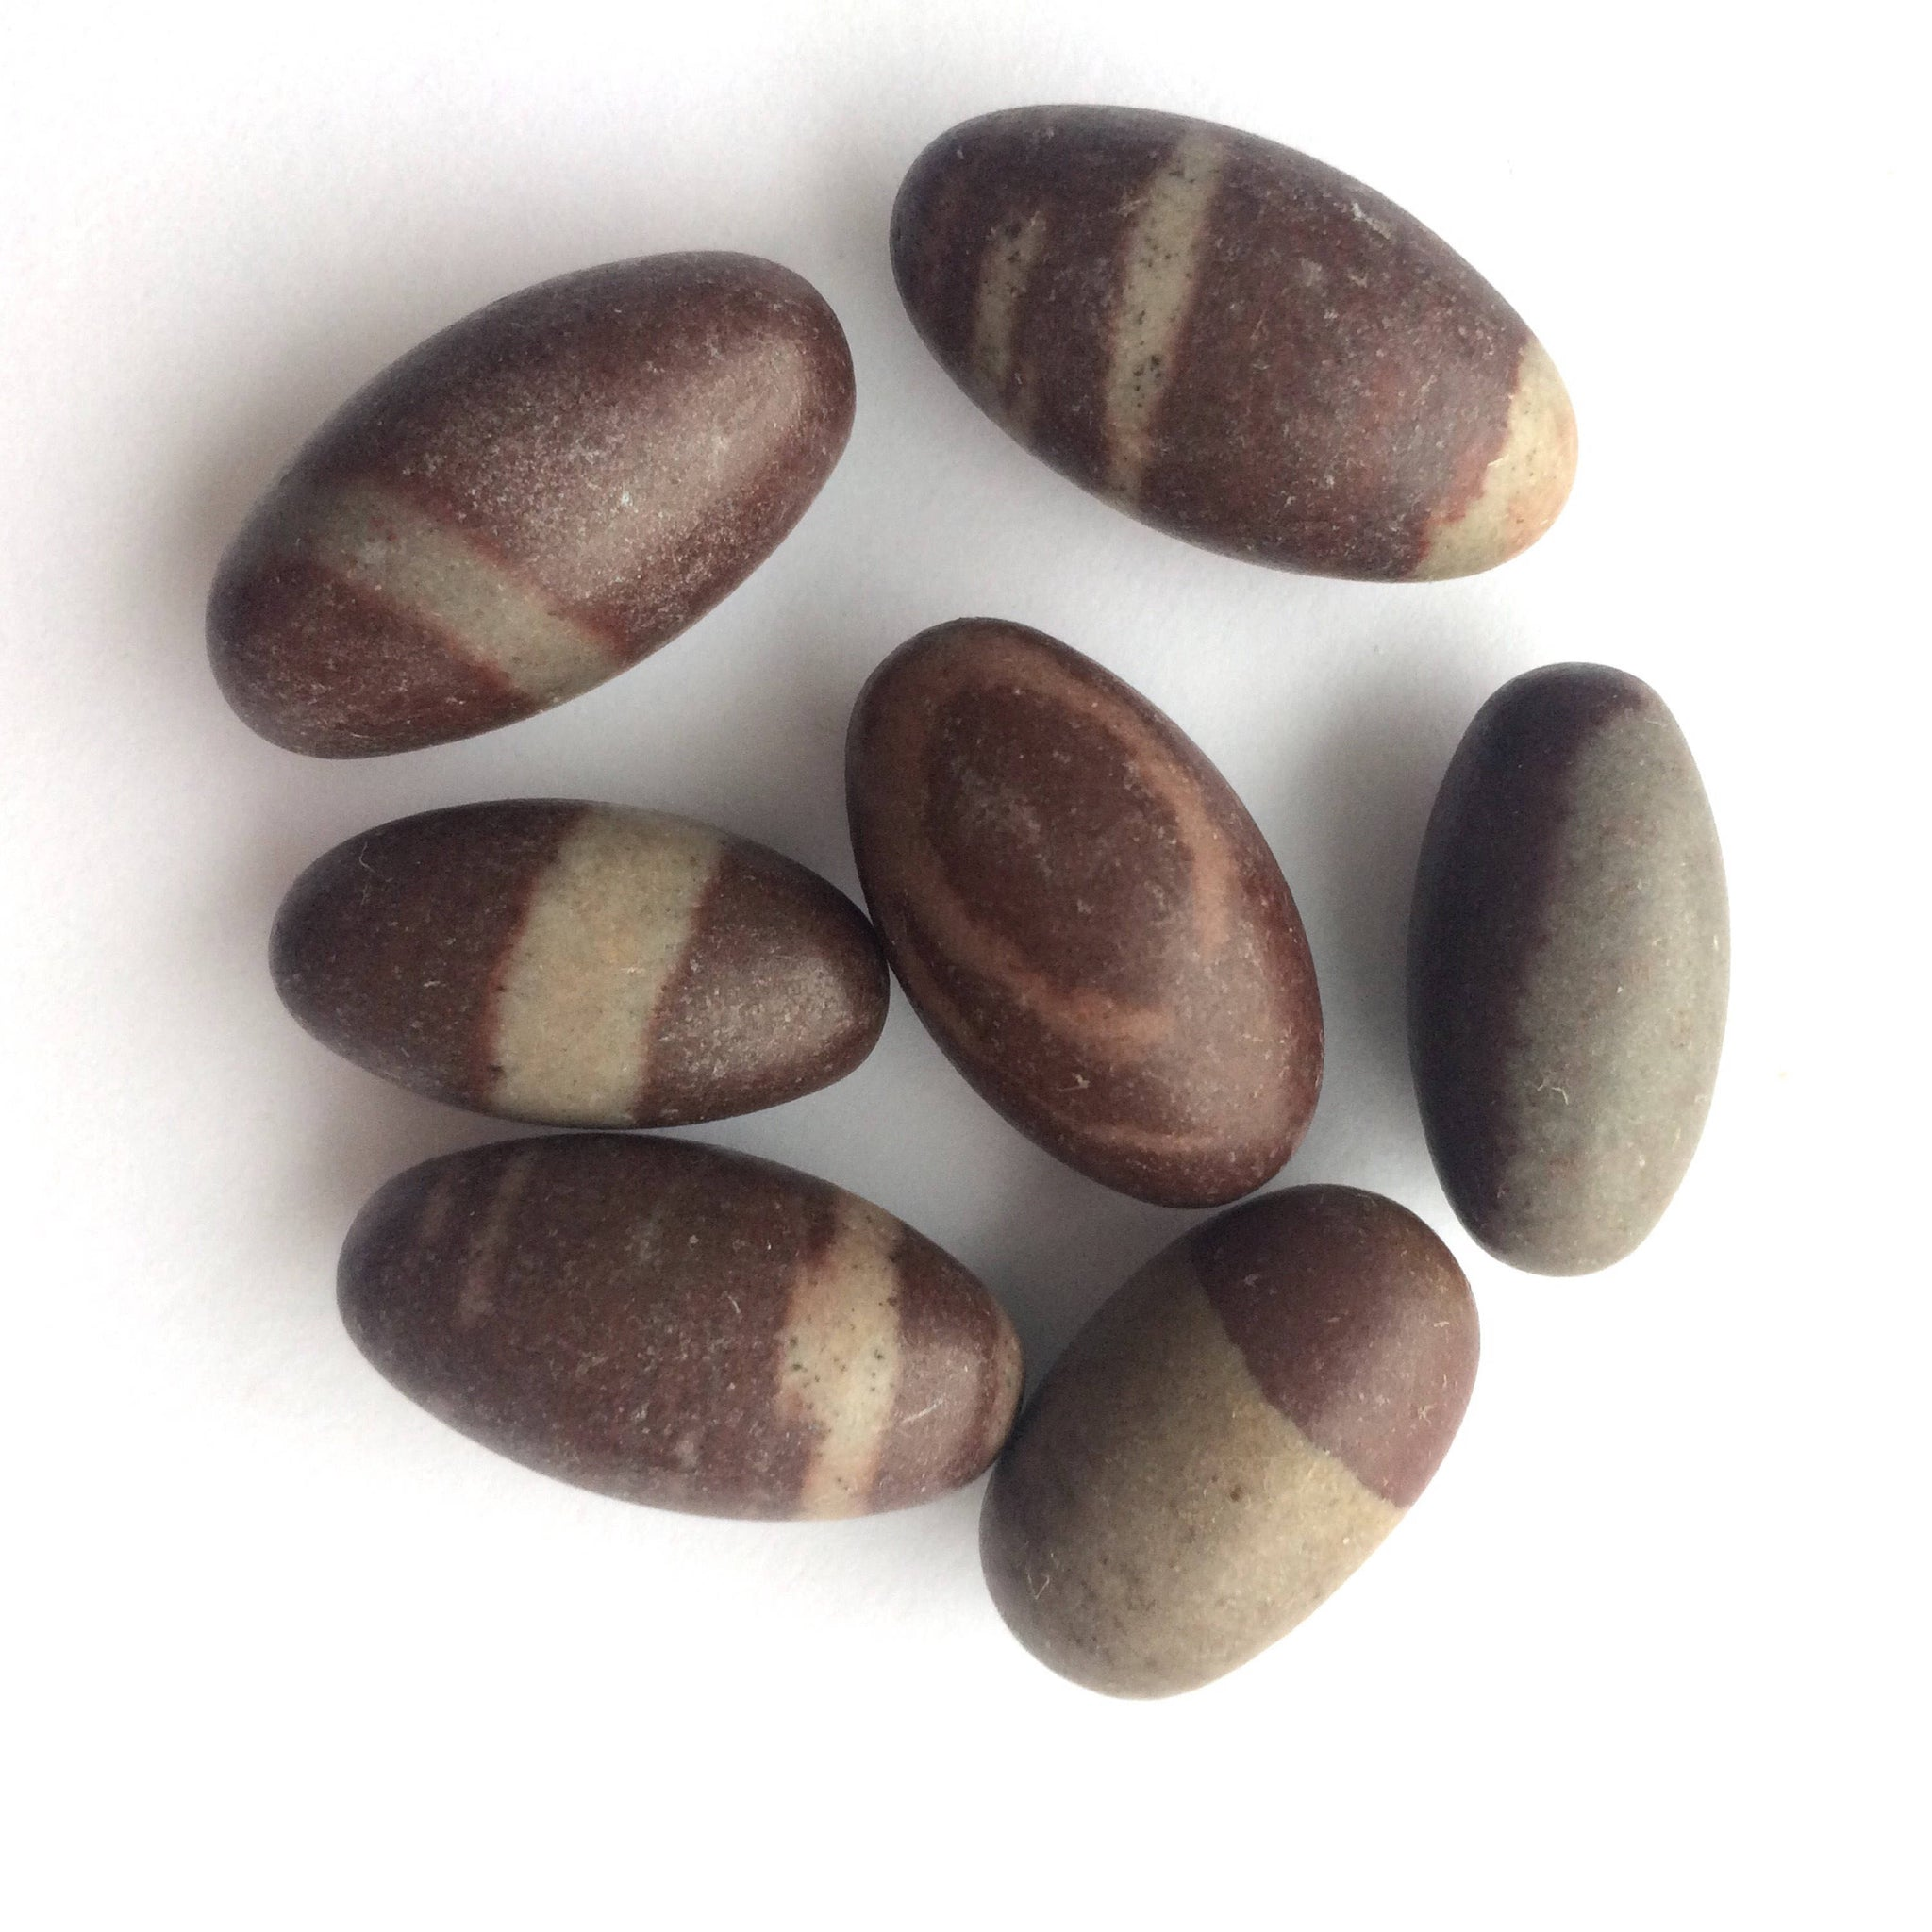 Shiva lingam 1 inch sacred stone very powerful improves health